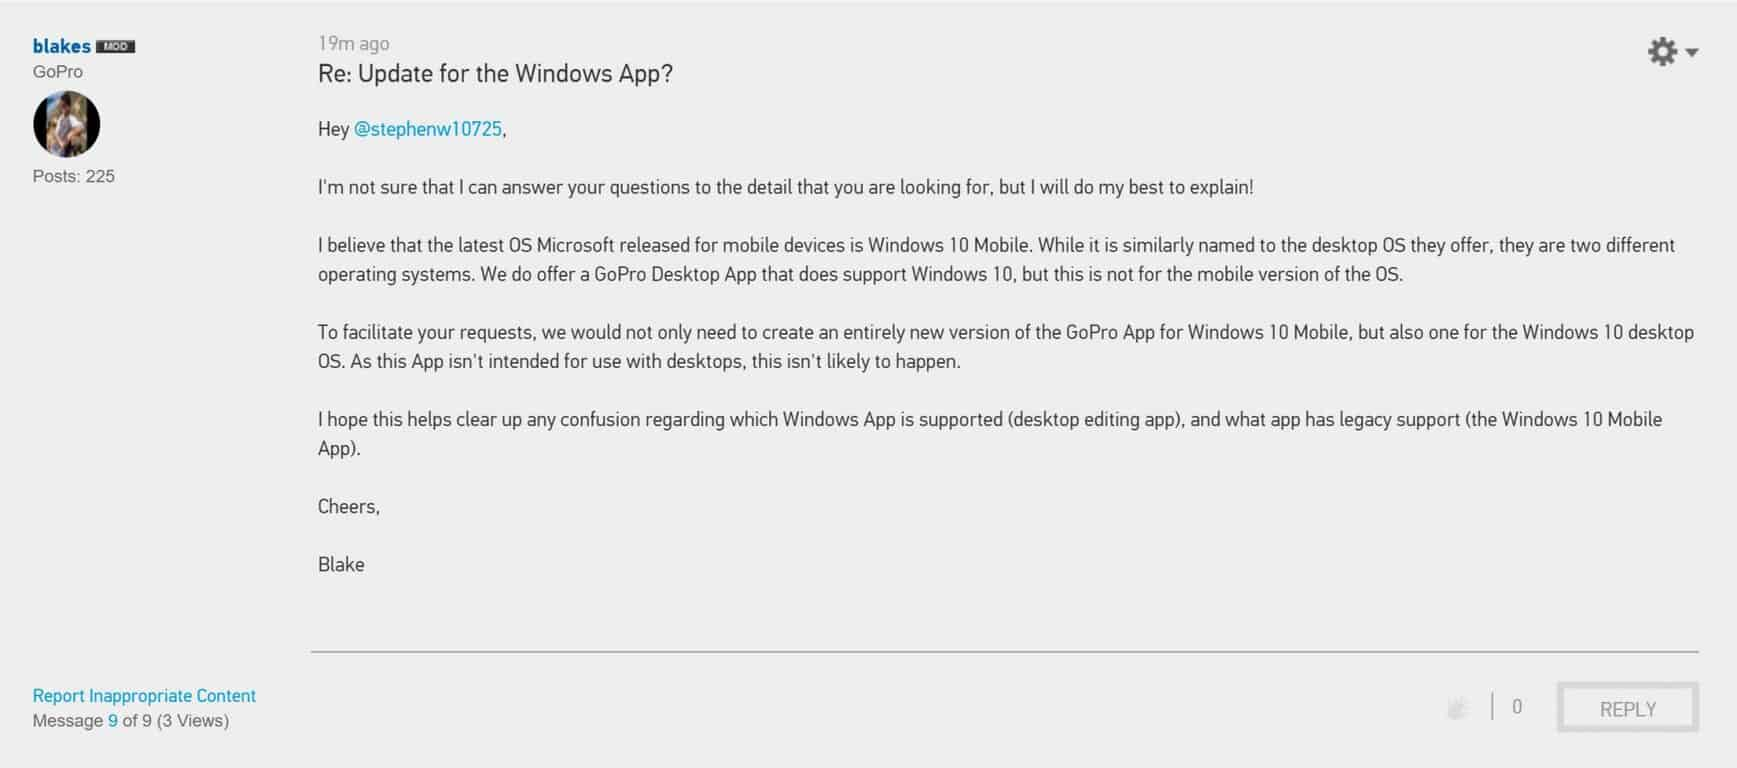 gopro GoPro: Windows 10 Mobile app not likely to happen, as we would need to recreate our desktop program